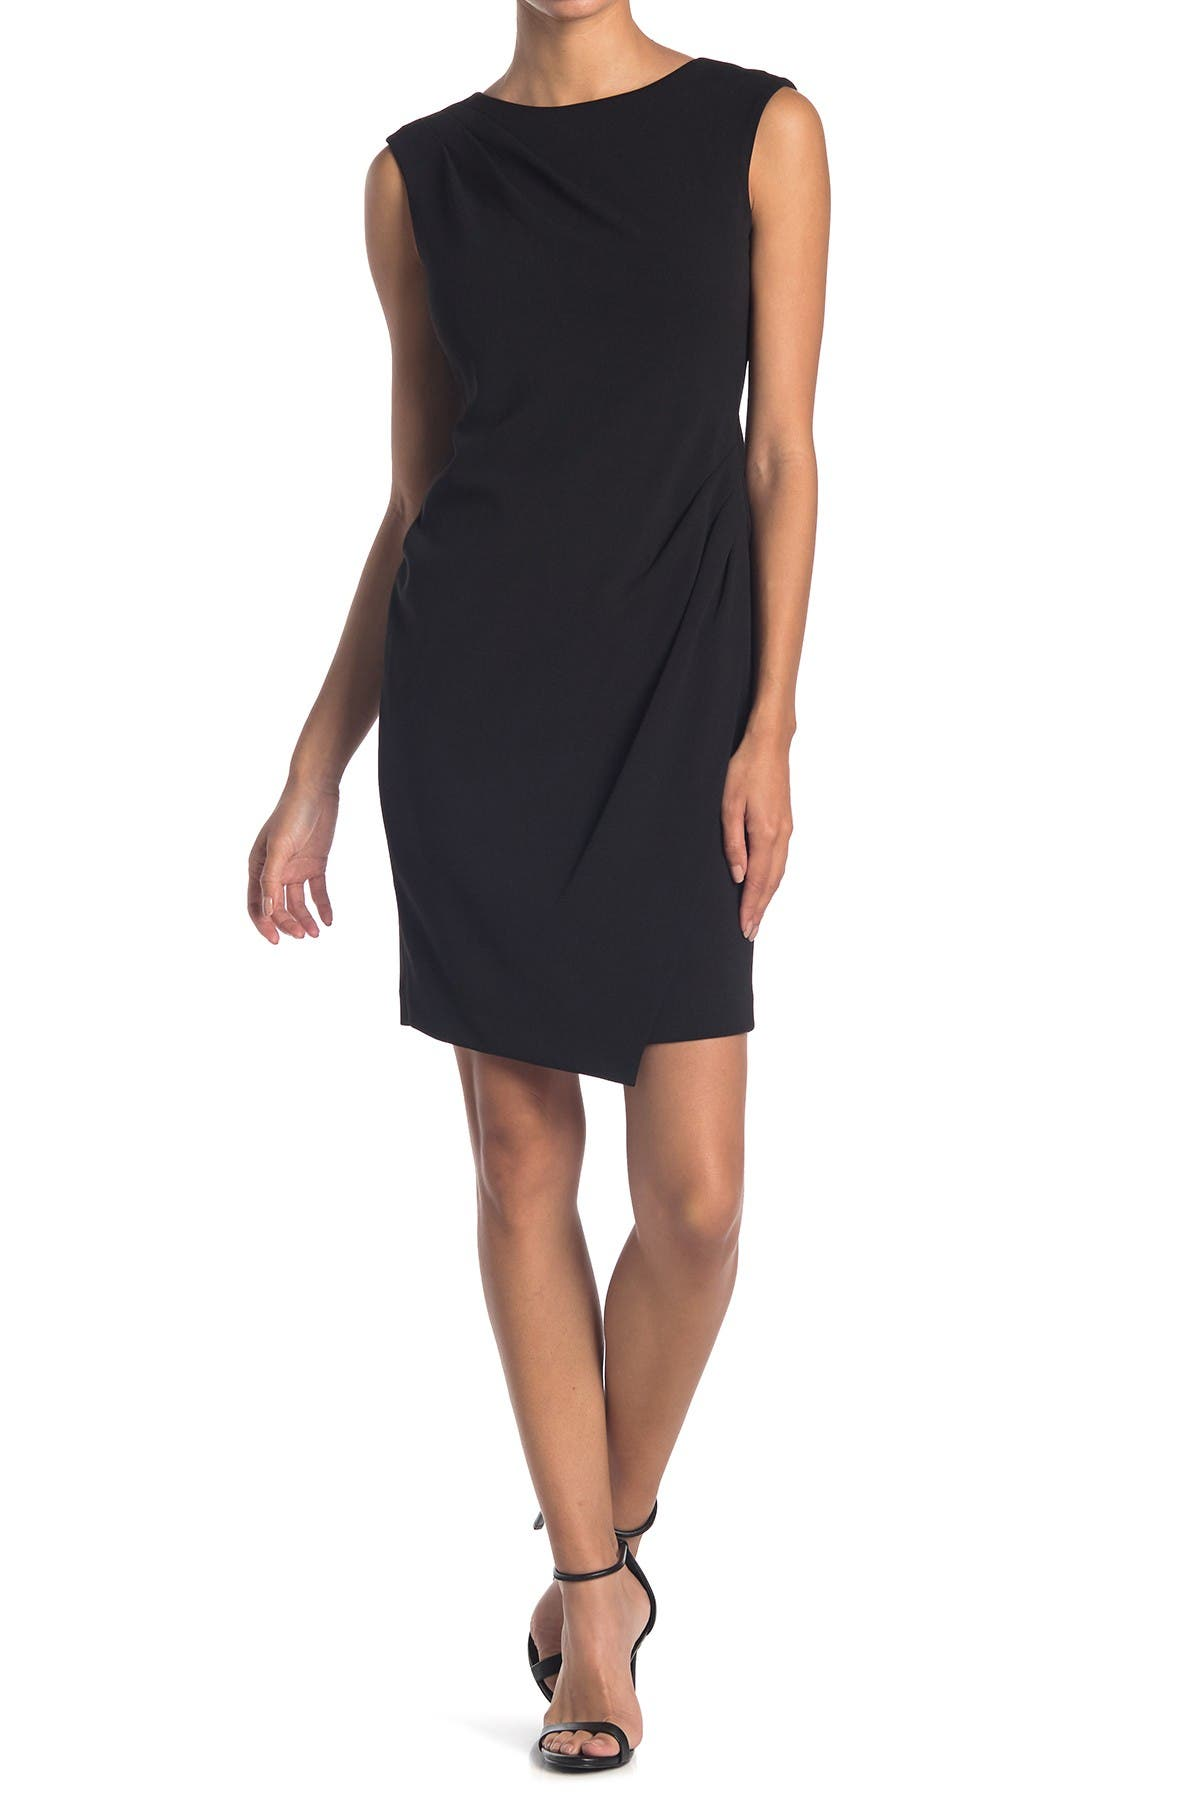 Image of Calvin Klein Side Ruched Sheath Dress